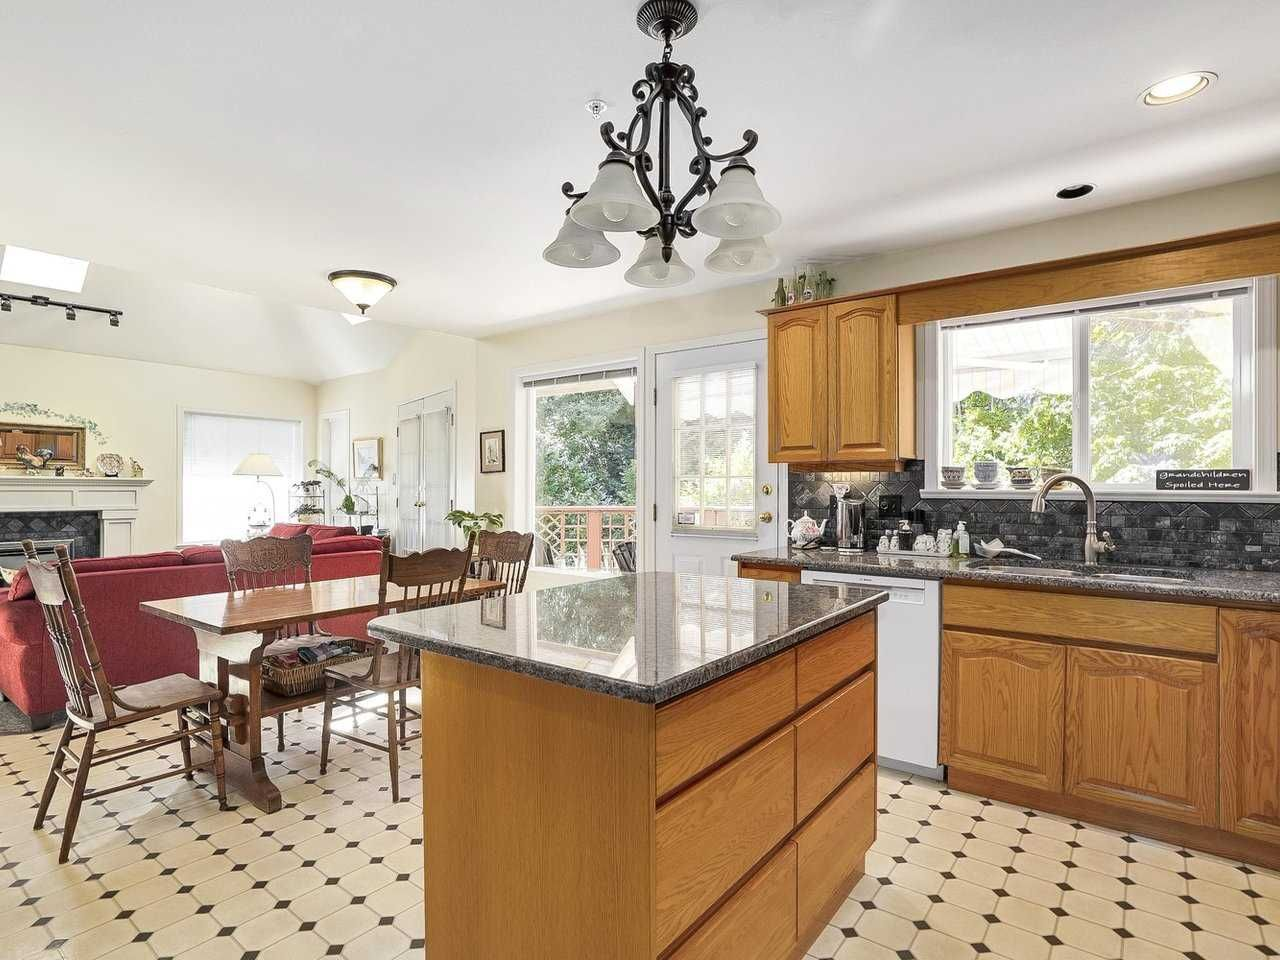 Photo 3: Photos: 1788 GORDON Avenue in West Vancouver: Ambleside House for sale : MLS®# R2207715